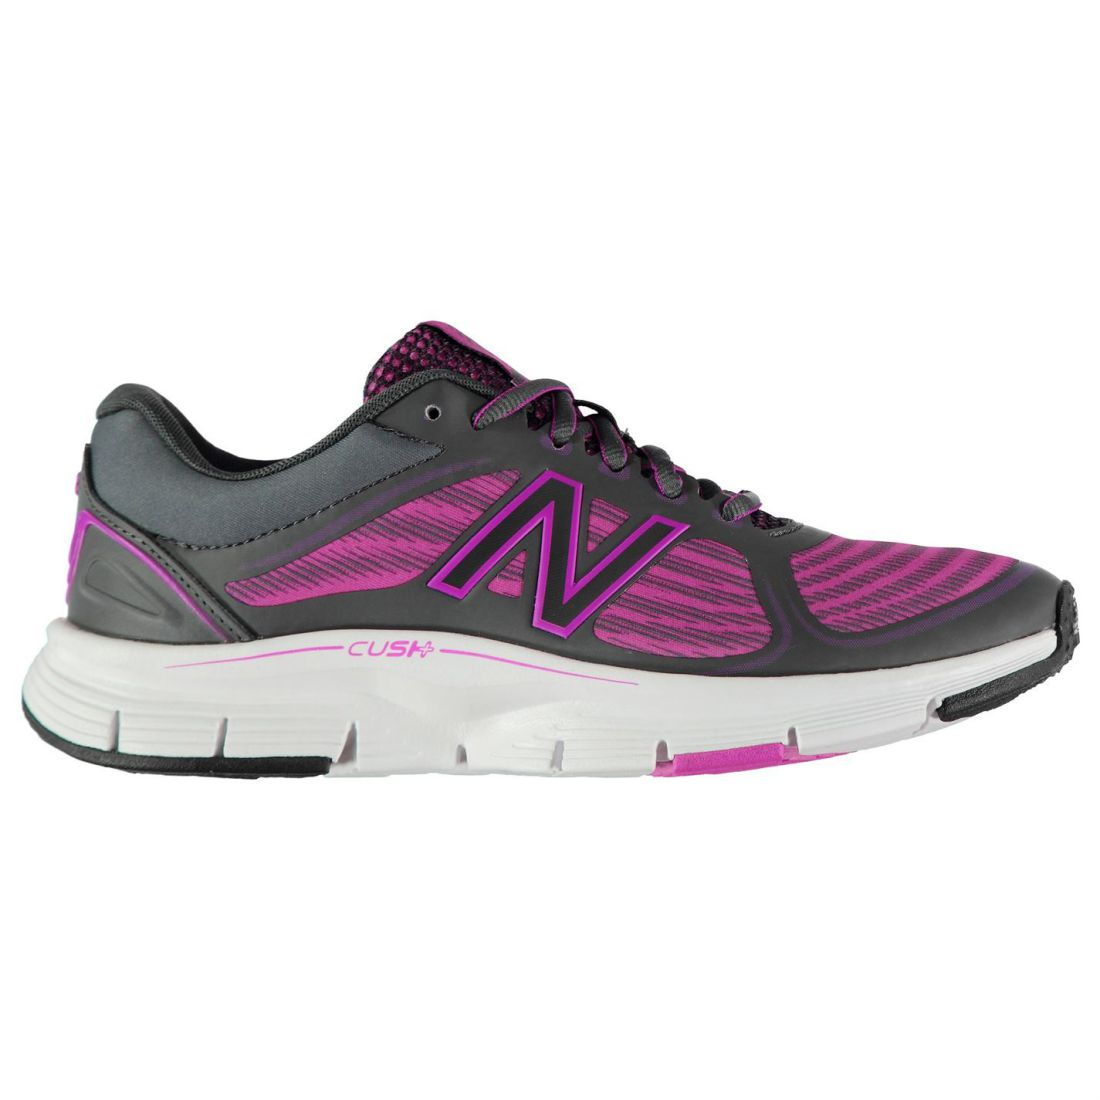 83db20742ec44 Details about New Balance Womens RiseMv1 Running Shoes Road Lace Up Padded  Ankle Collar